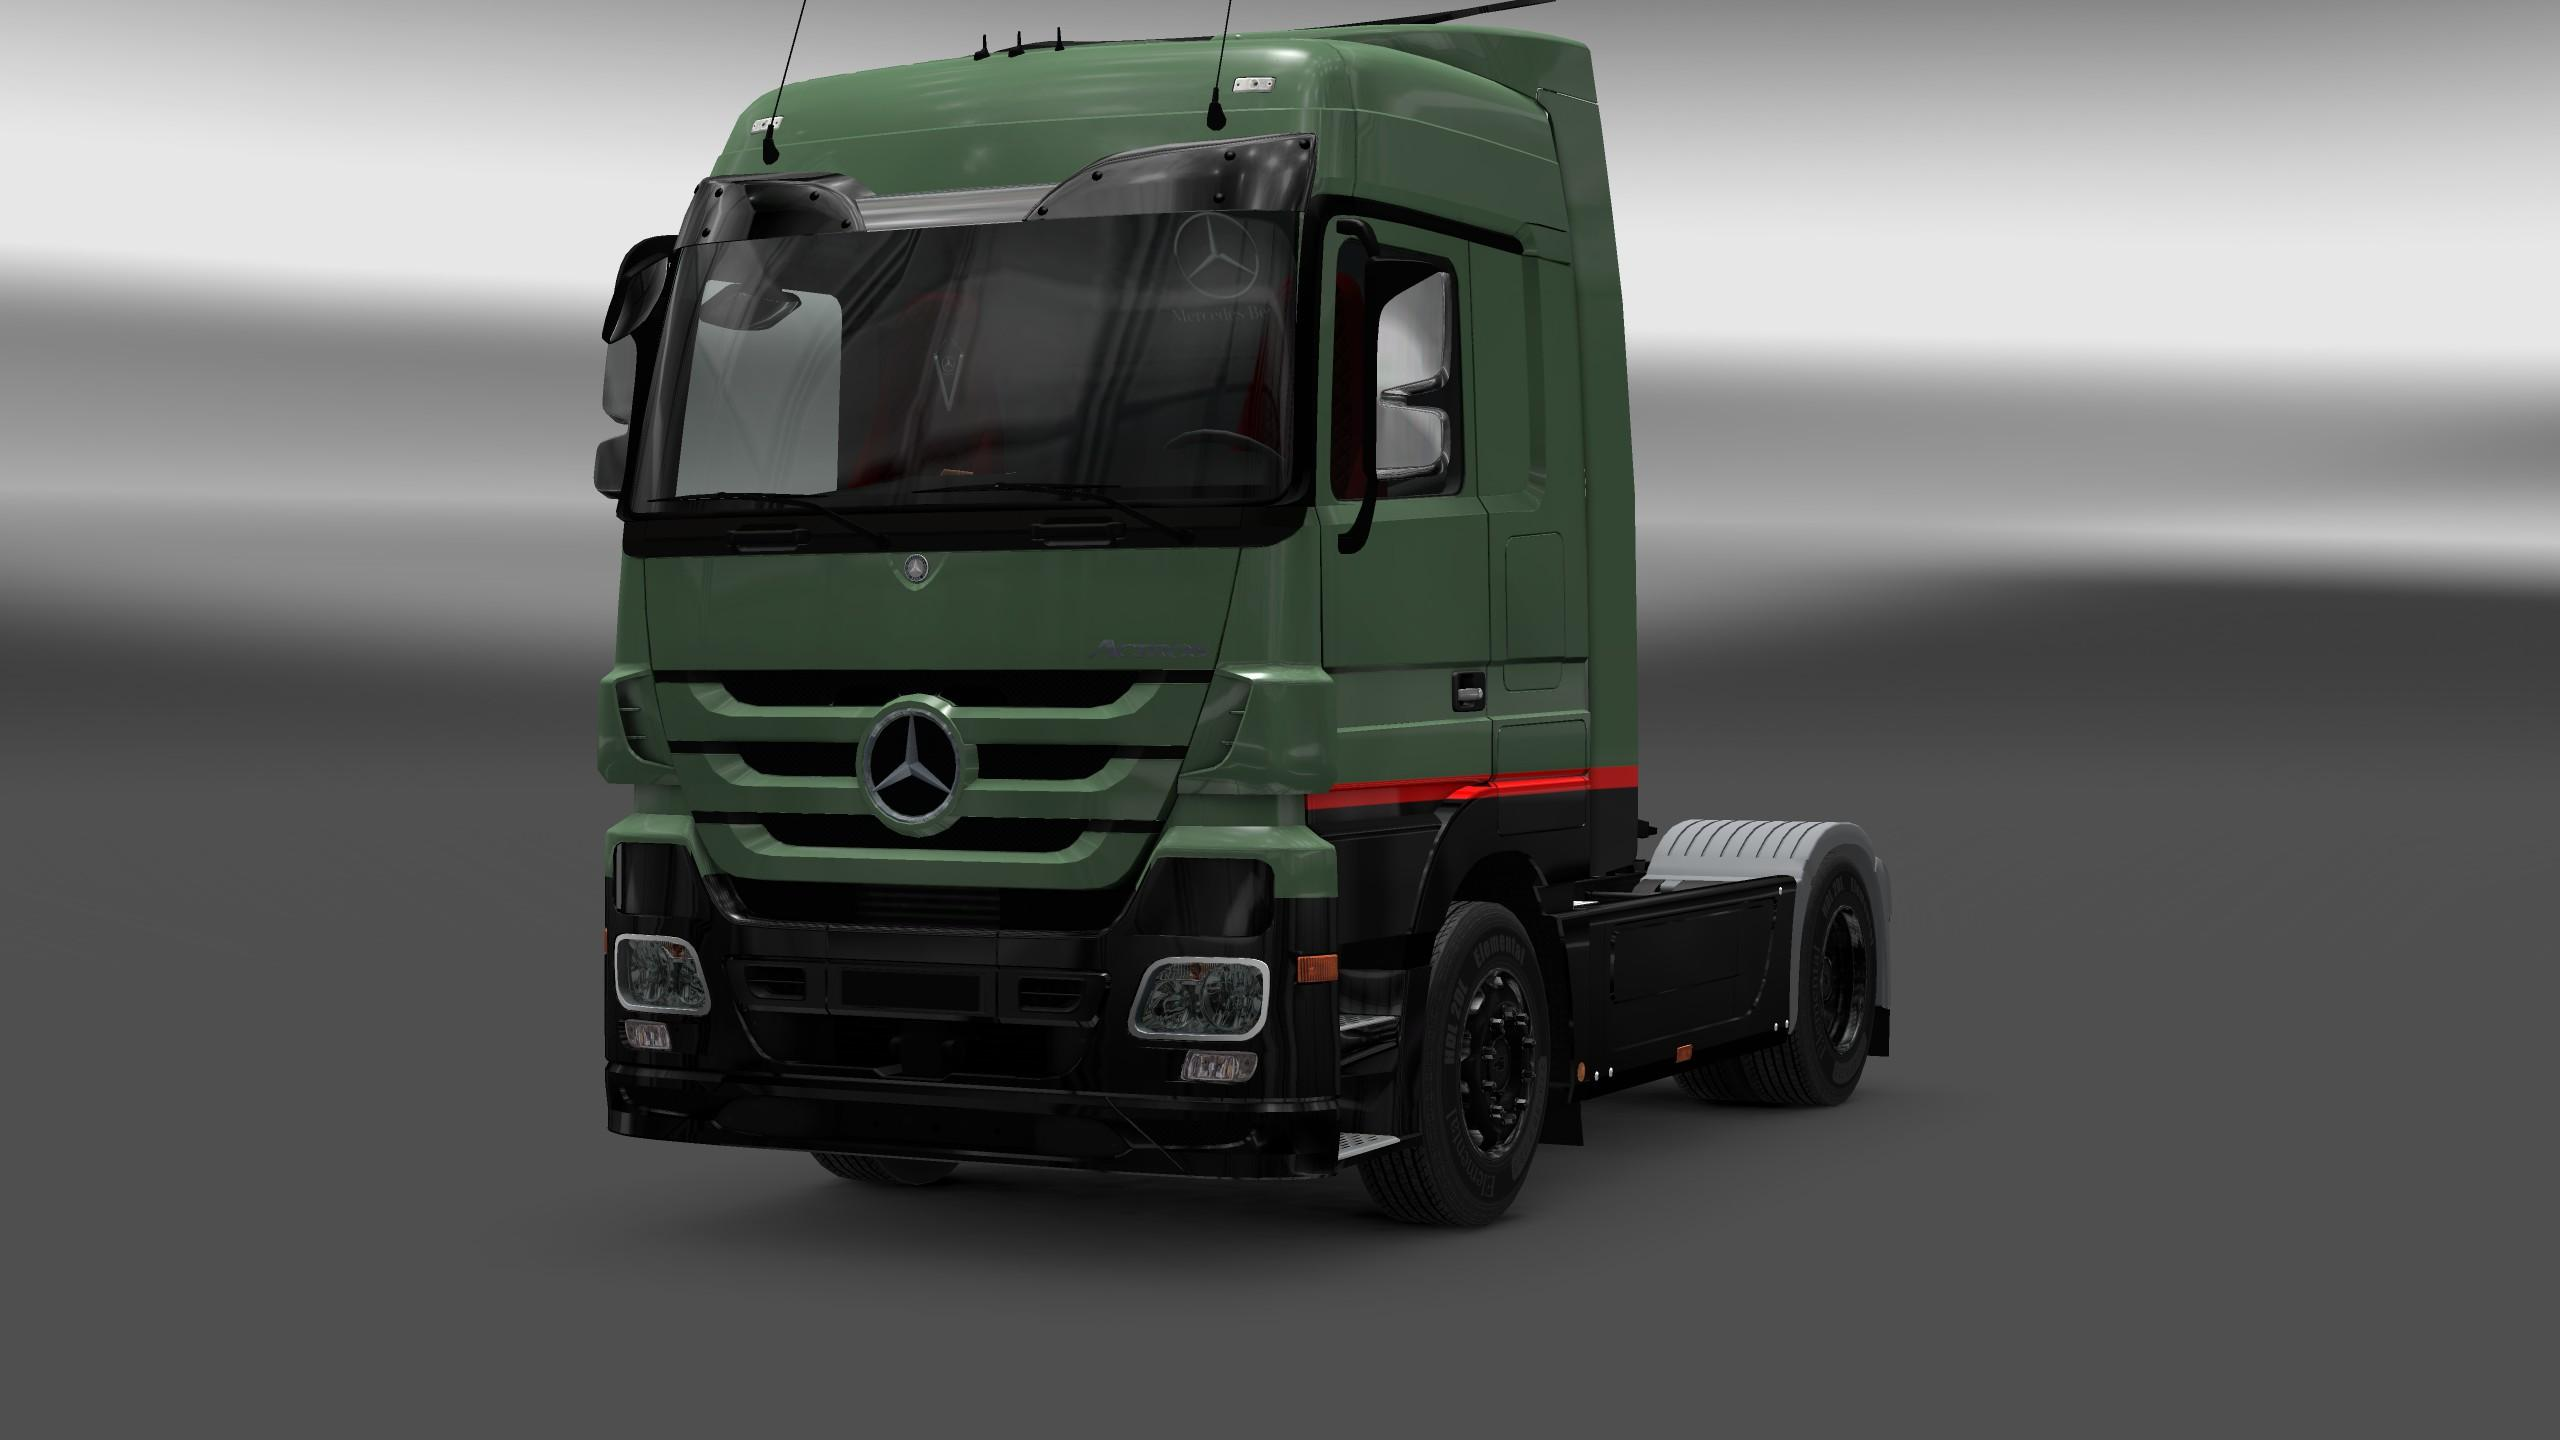 2255-mercedes-benz-actros-mp3-interiorexterior-rework_1